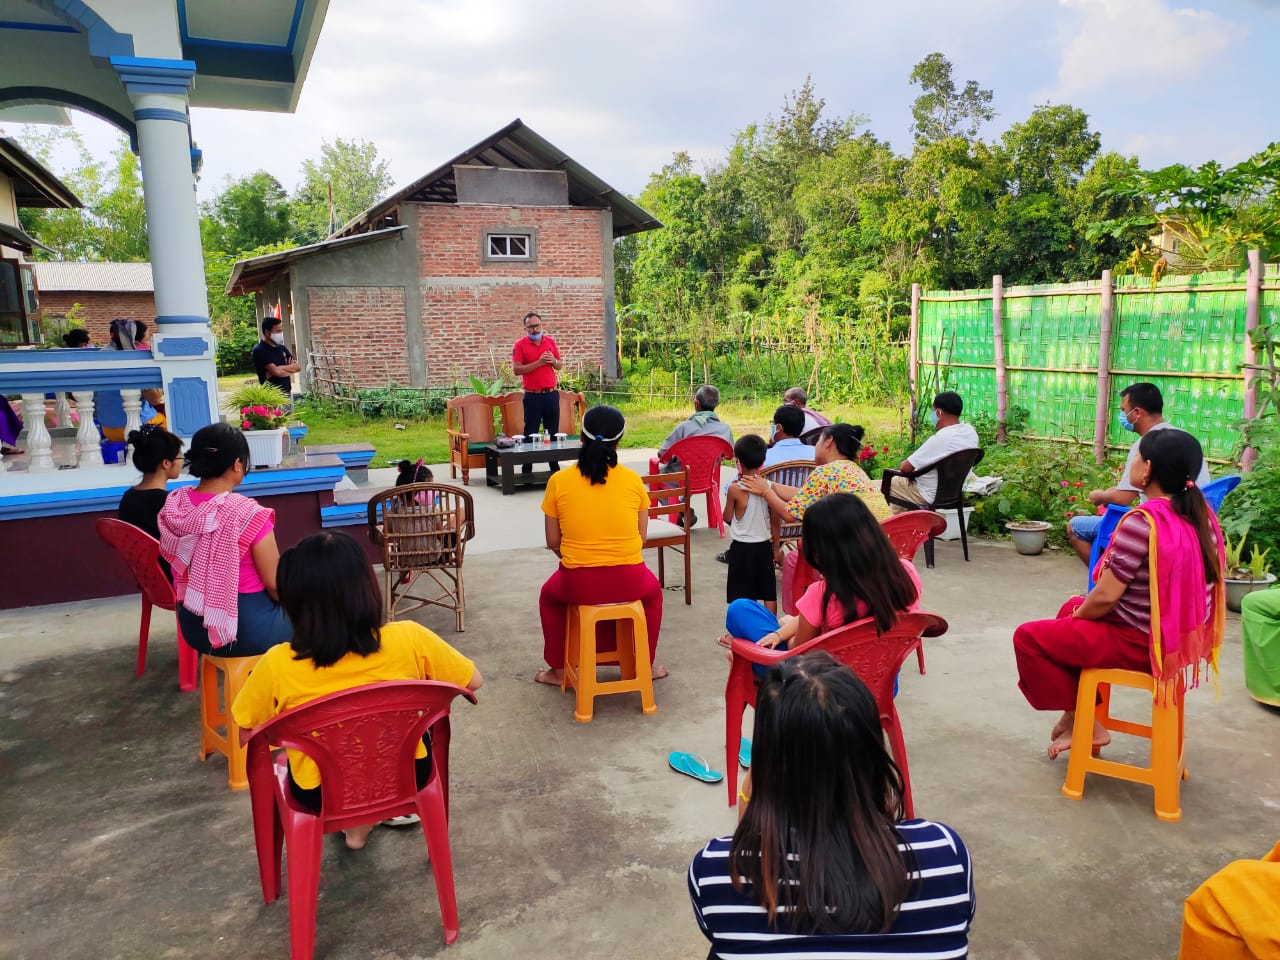 S.Mexico Singh, Research Scholar (Parasitology) held a peaceful interaction with a group at Yairipok  kekru mathak leikai.